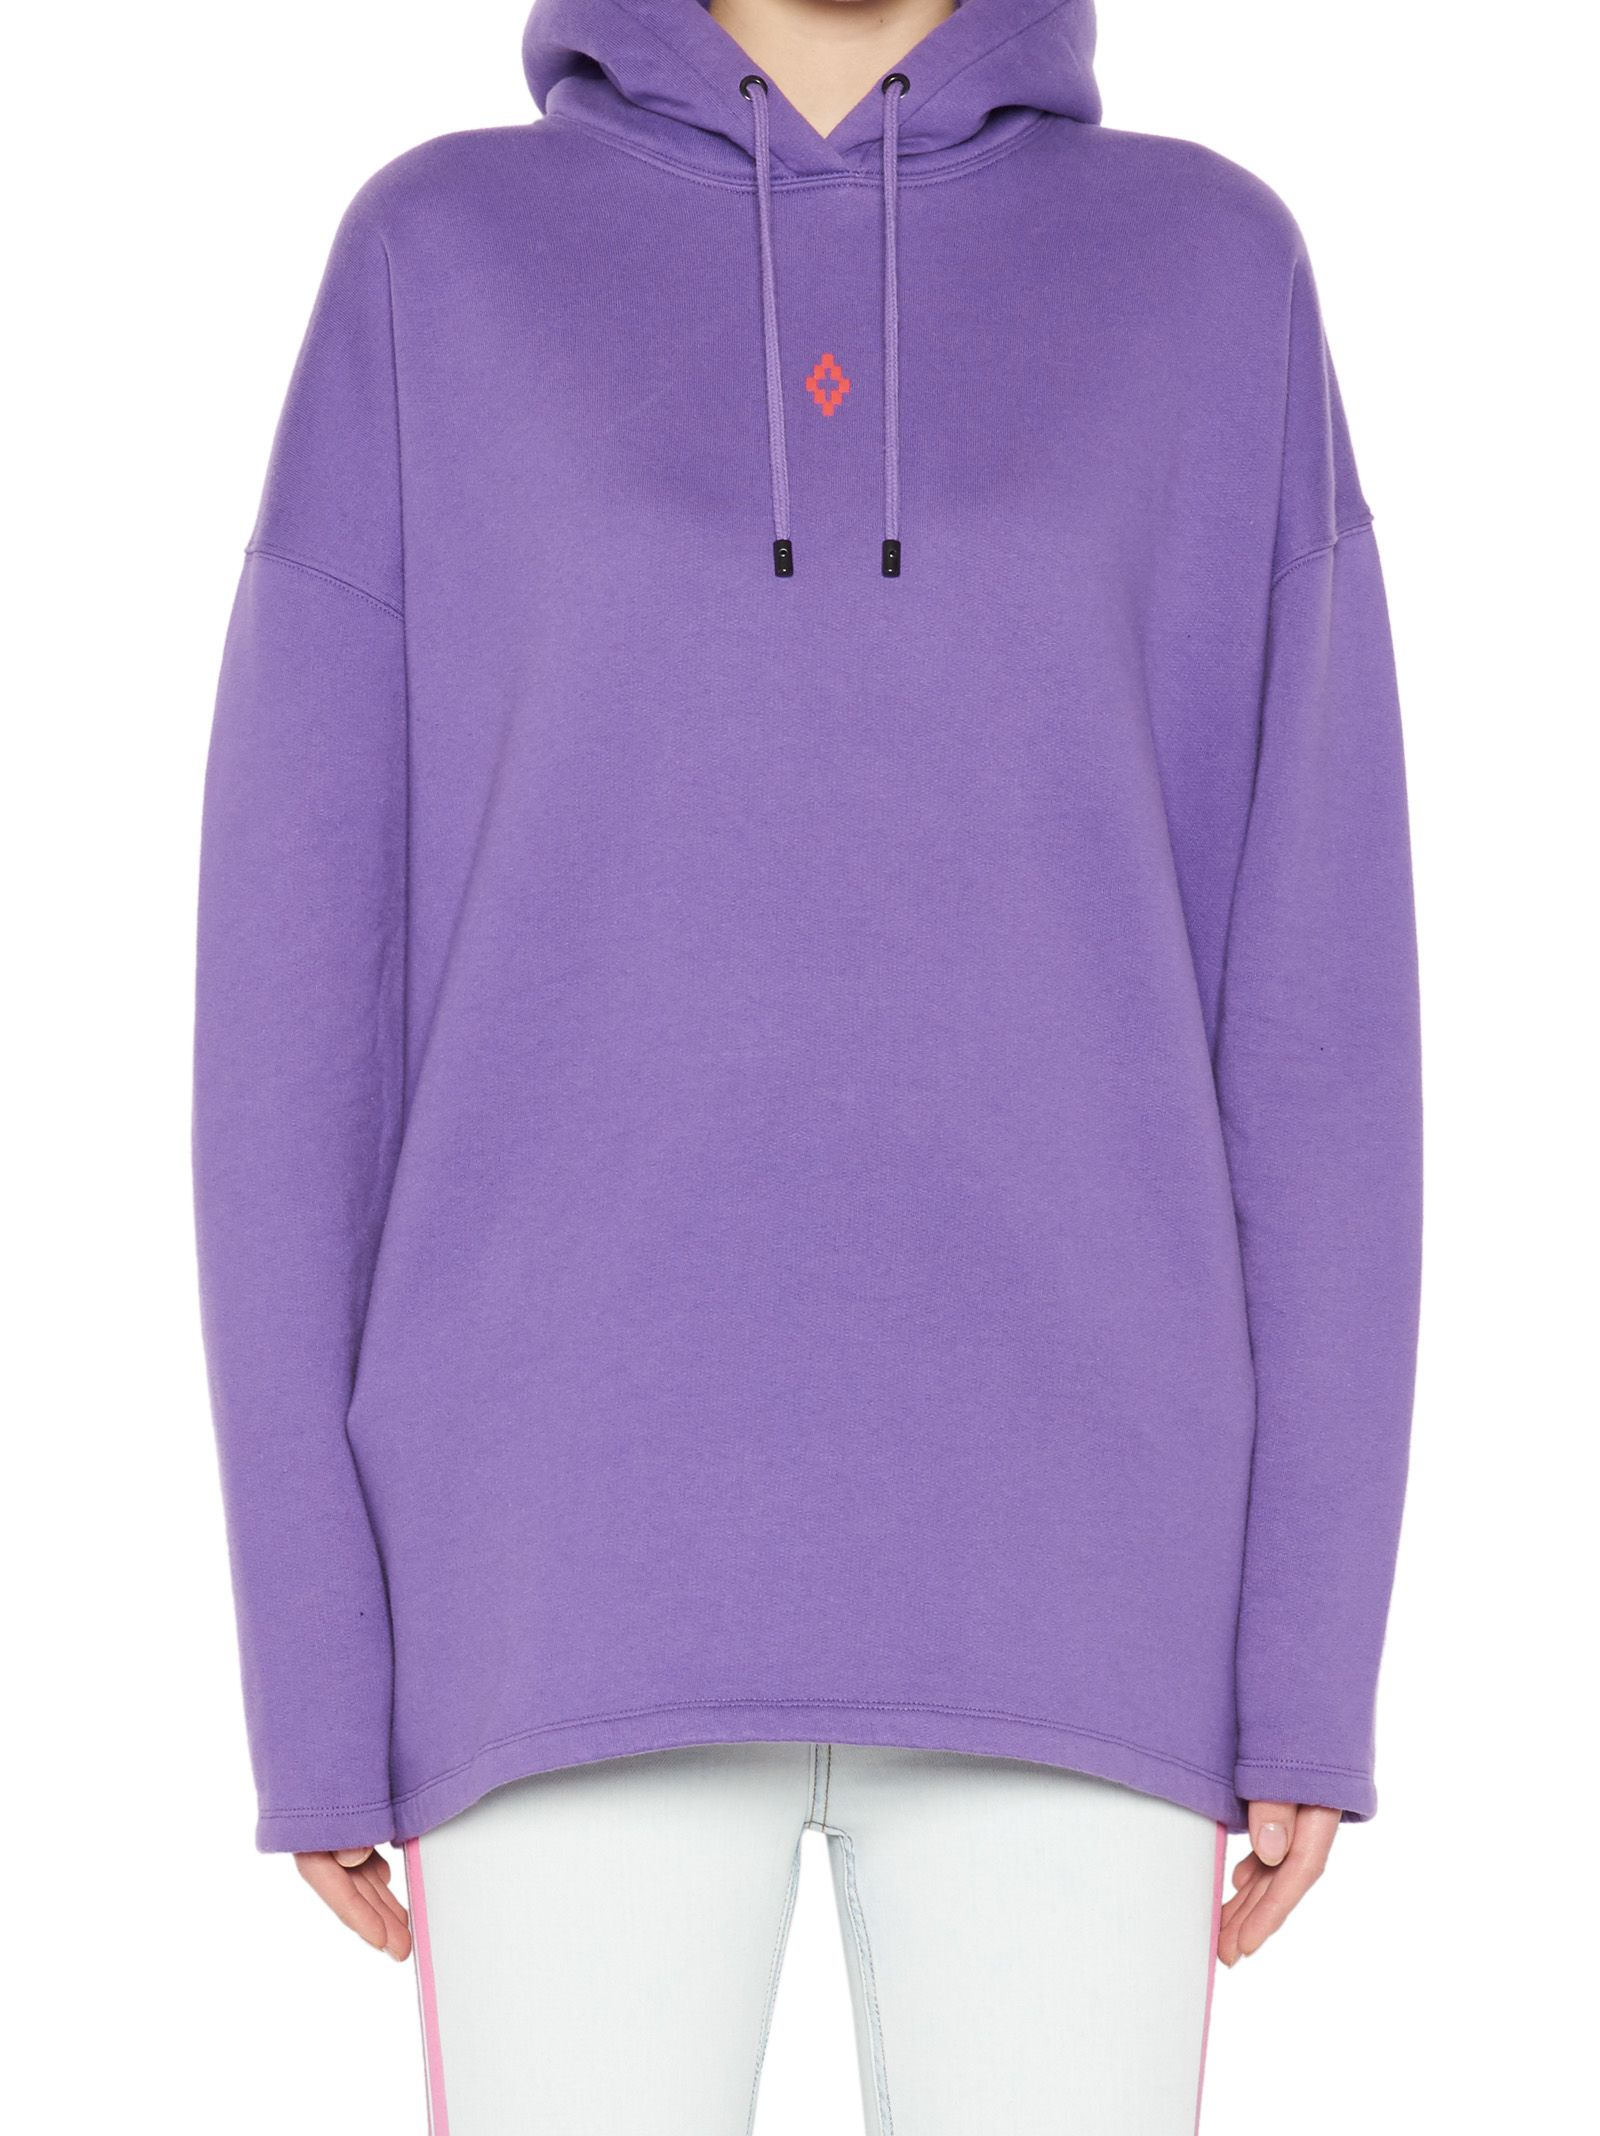 County Milan Hoodie In Of 'skull' Purple Marcelo Burlon qw67F1w